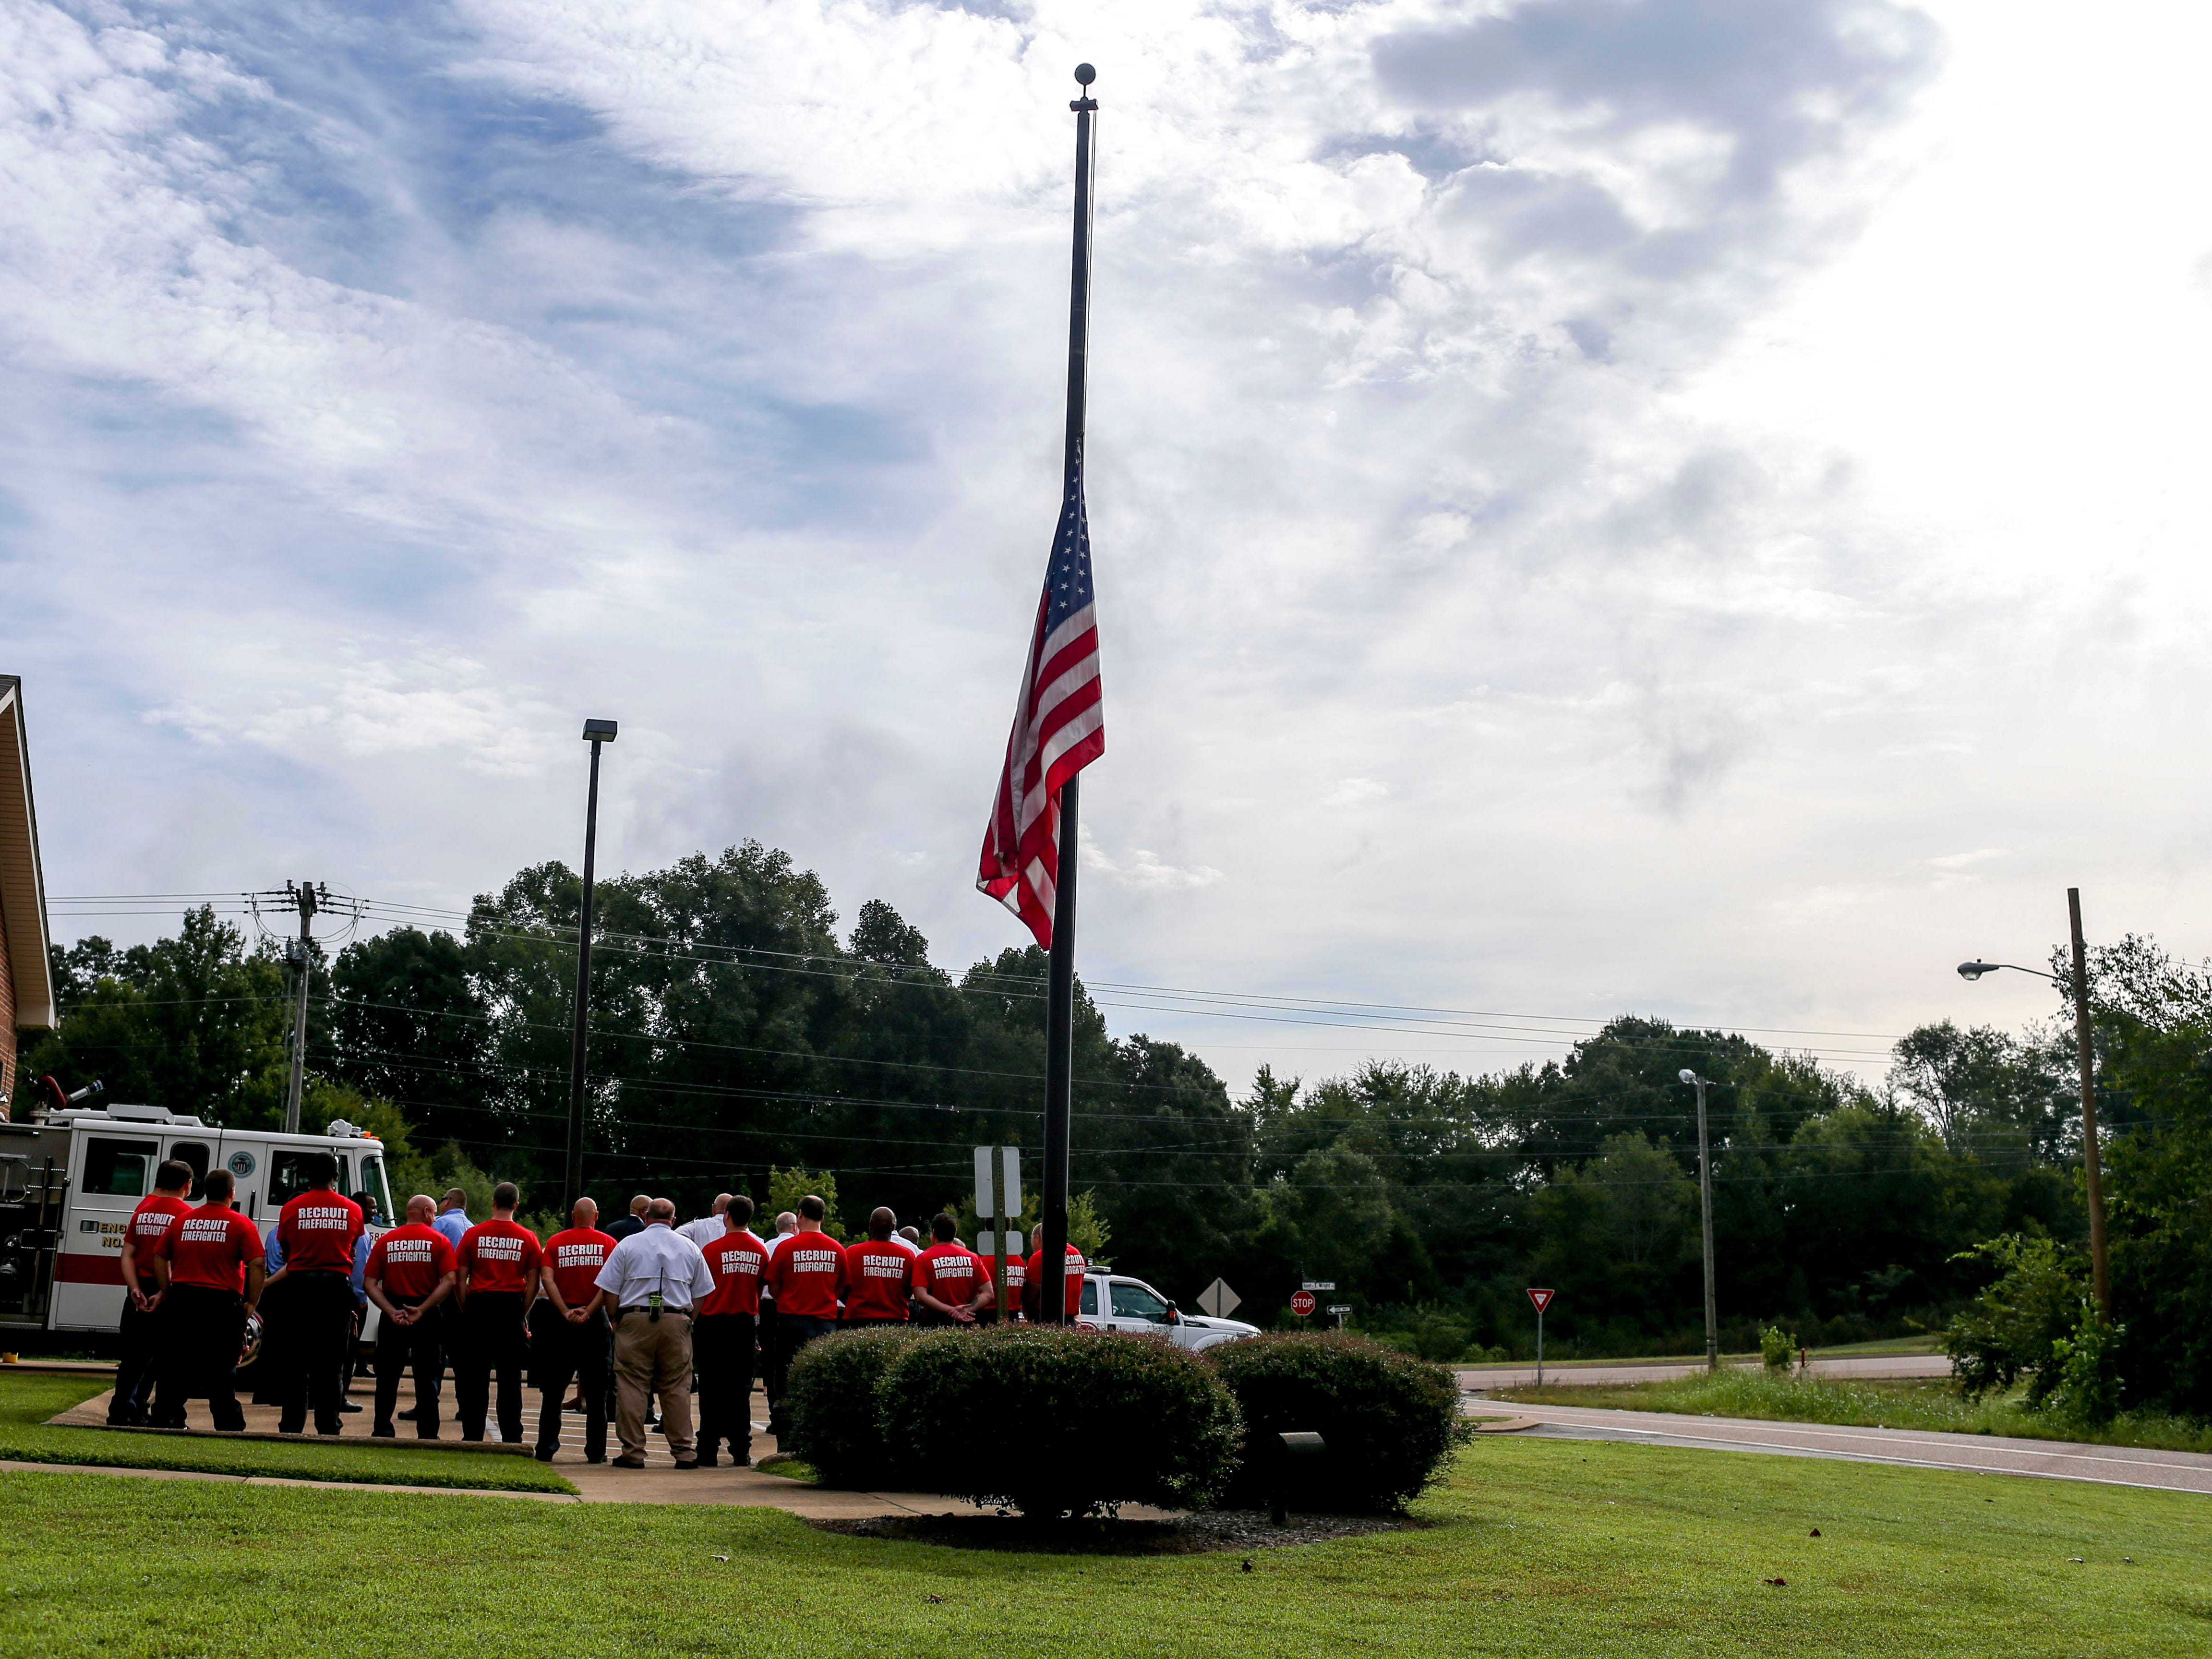 The American flag is flown at half mast during a ceremony honoring the victims of the 9/11 attacks at Fire Station 3 in Jackson, Tenn., on Tuesday, Sept. 11, 2018.